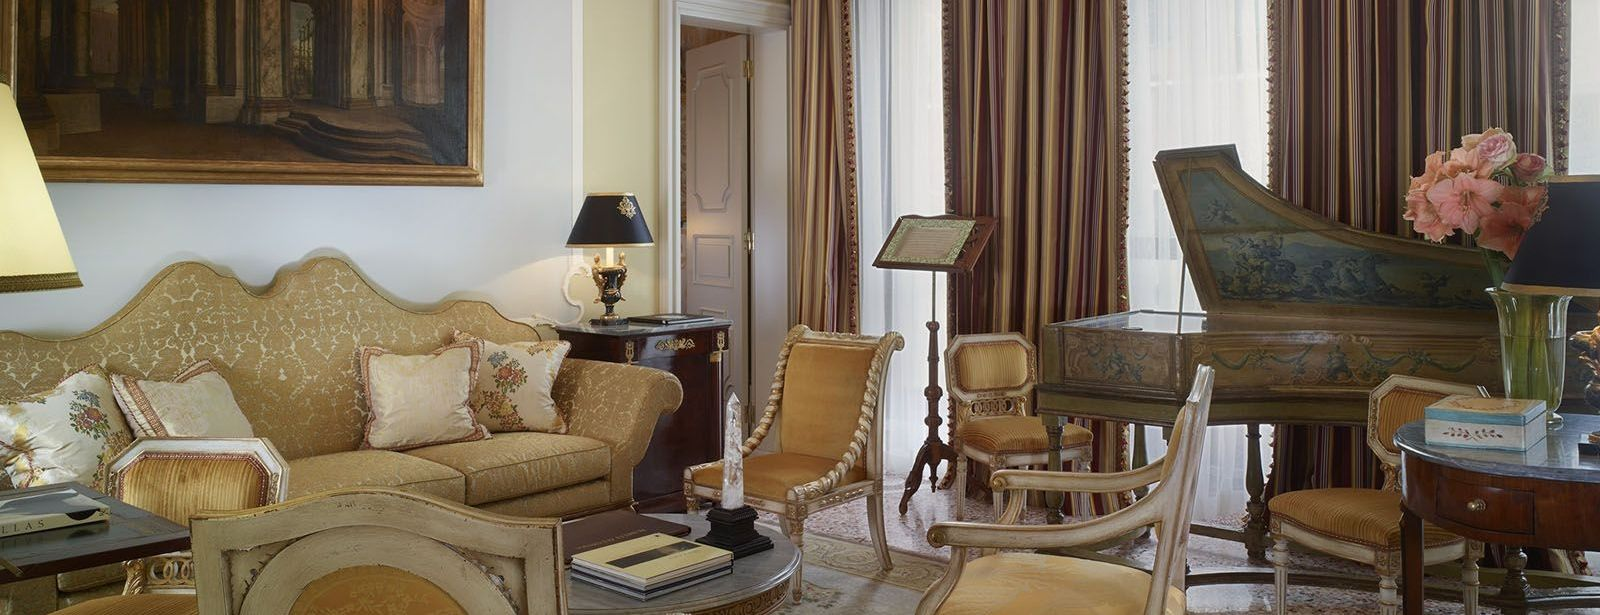 La Fenice Heritage Suite Living Room